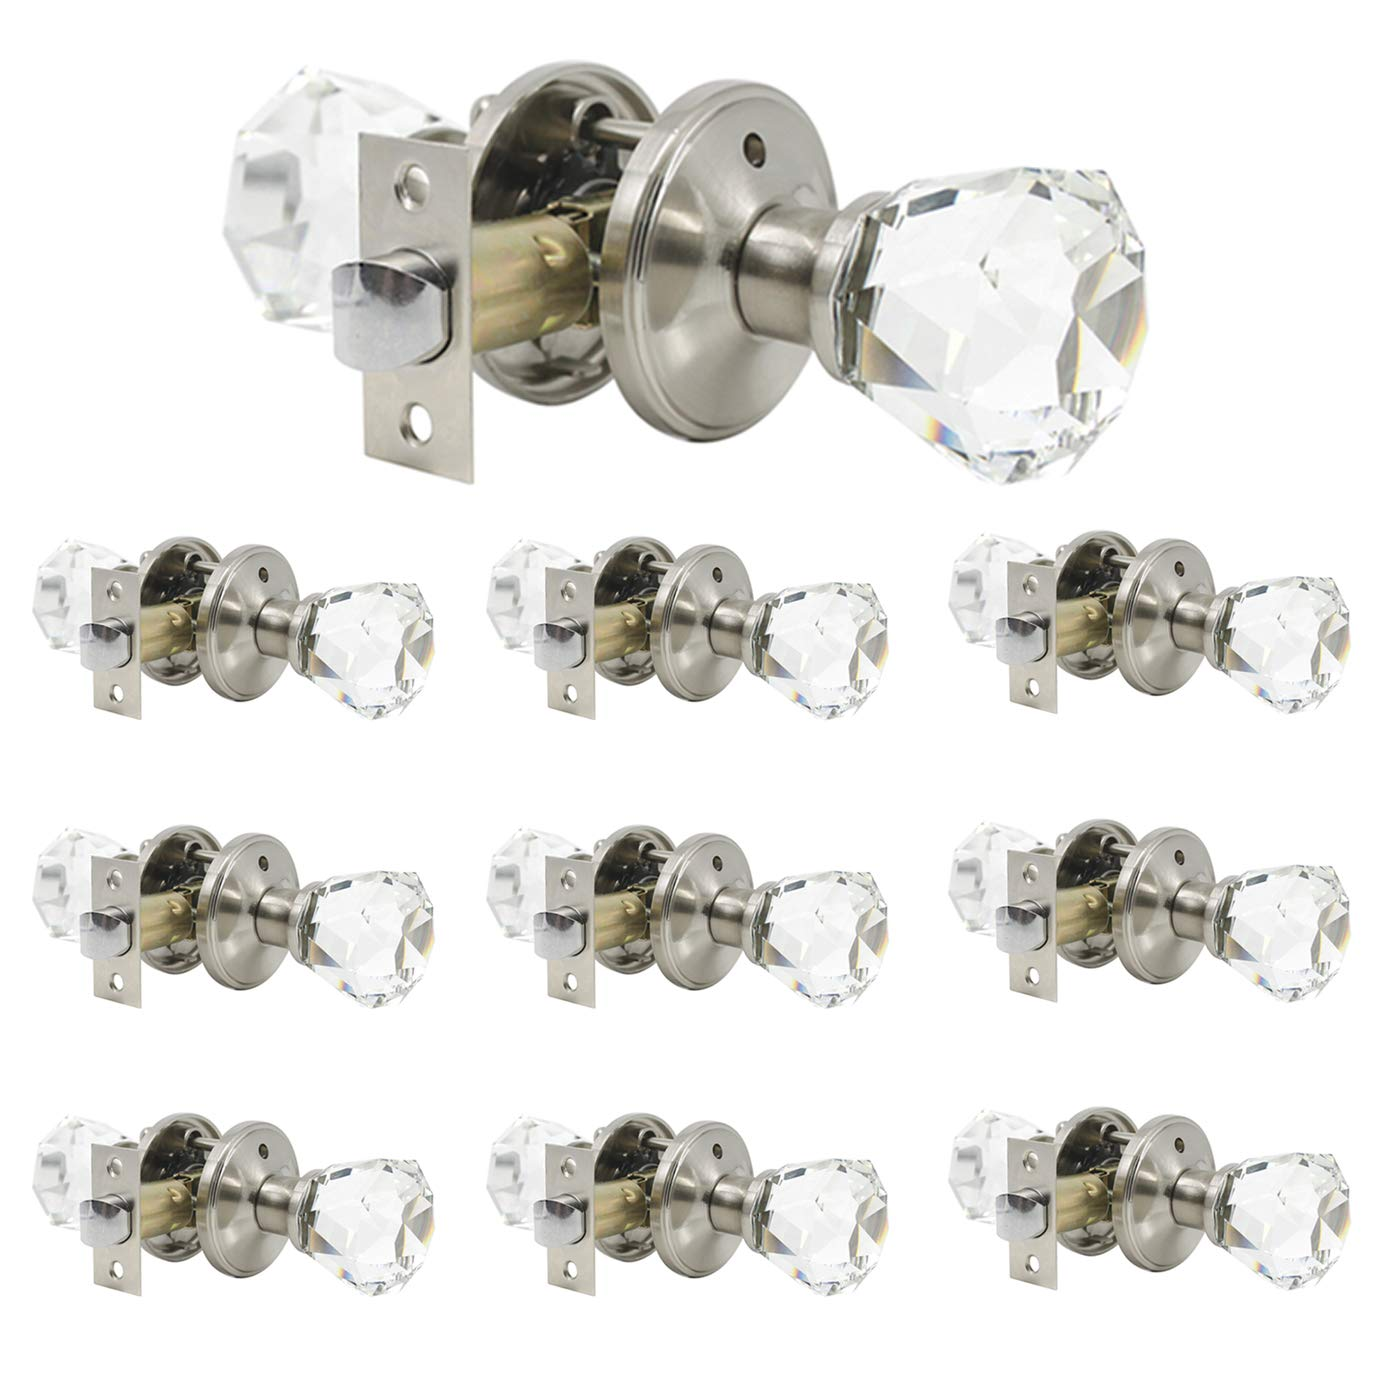 10 Pack Classic Diamond Crystal Door Knobs Unlocking, Passage Function for Hall Closets Pantry Doors, Satin Nickel Finish|Heavy Duty Interior Door Knobs with Premium Quality by Knobonly